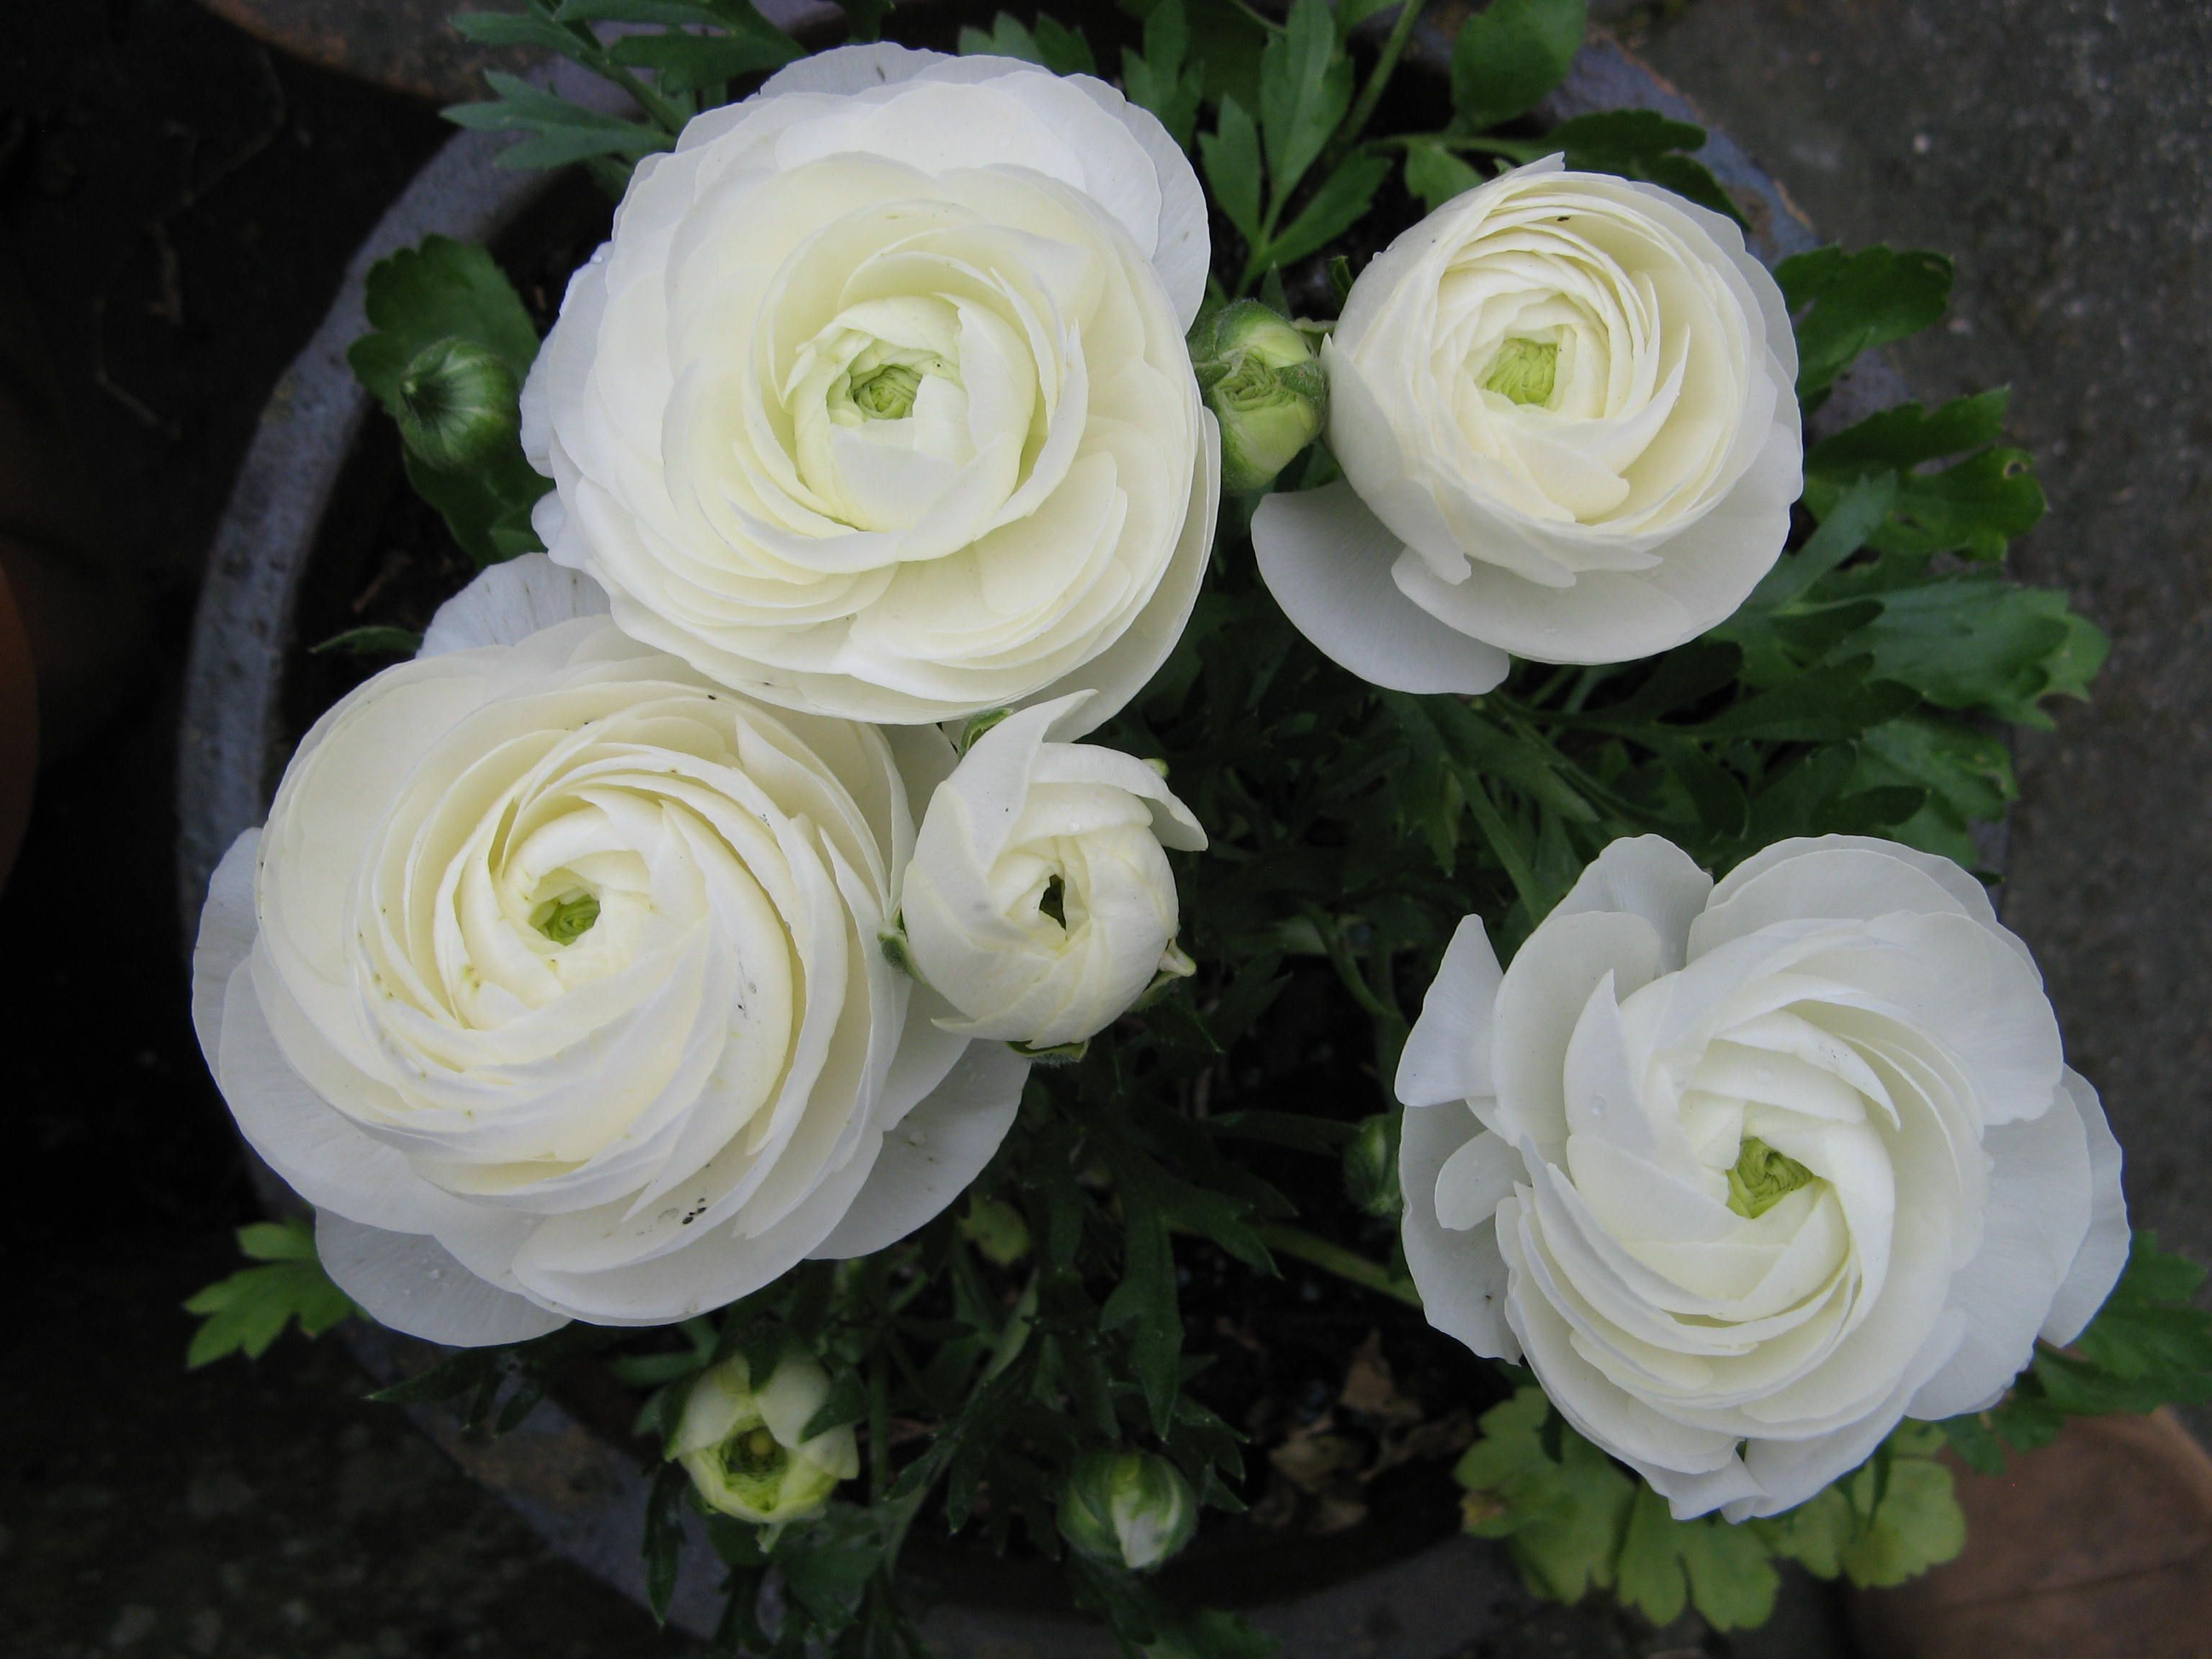 It Coincided With Lots Of White Flowers Appearing In The Garden I